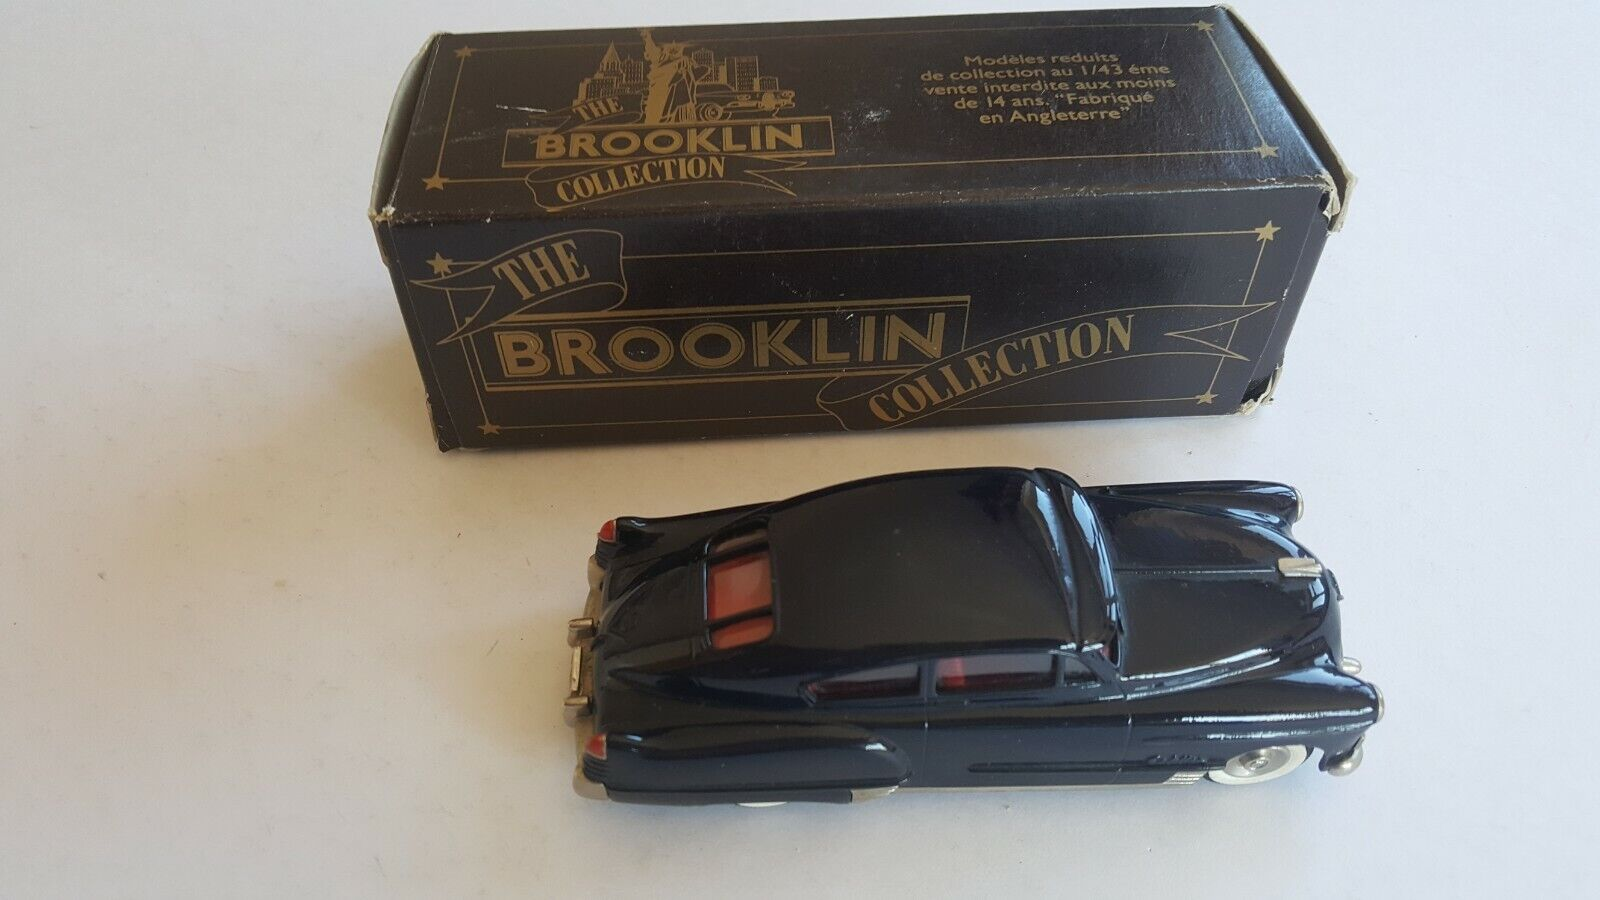 BROOKLIN BRK.40 1948 CADILLAC dinamico veloce indietro COUPE DK. Blu 1 43 in scatola 1996